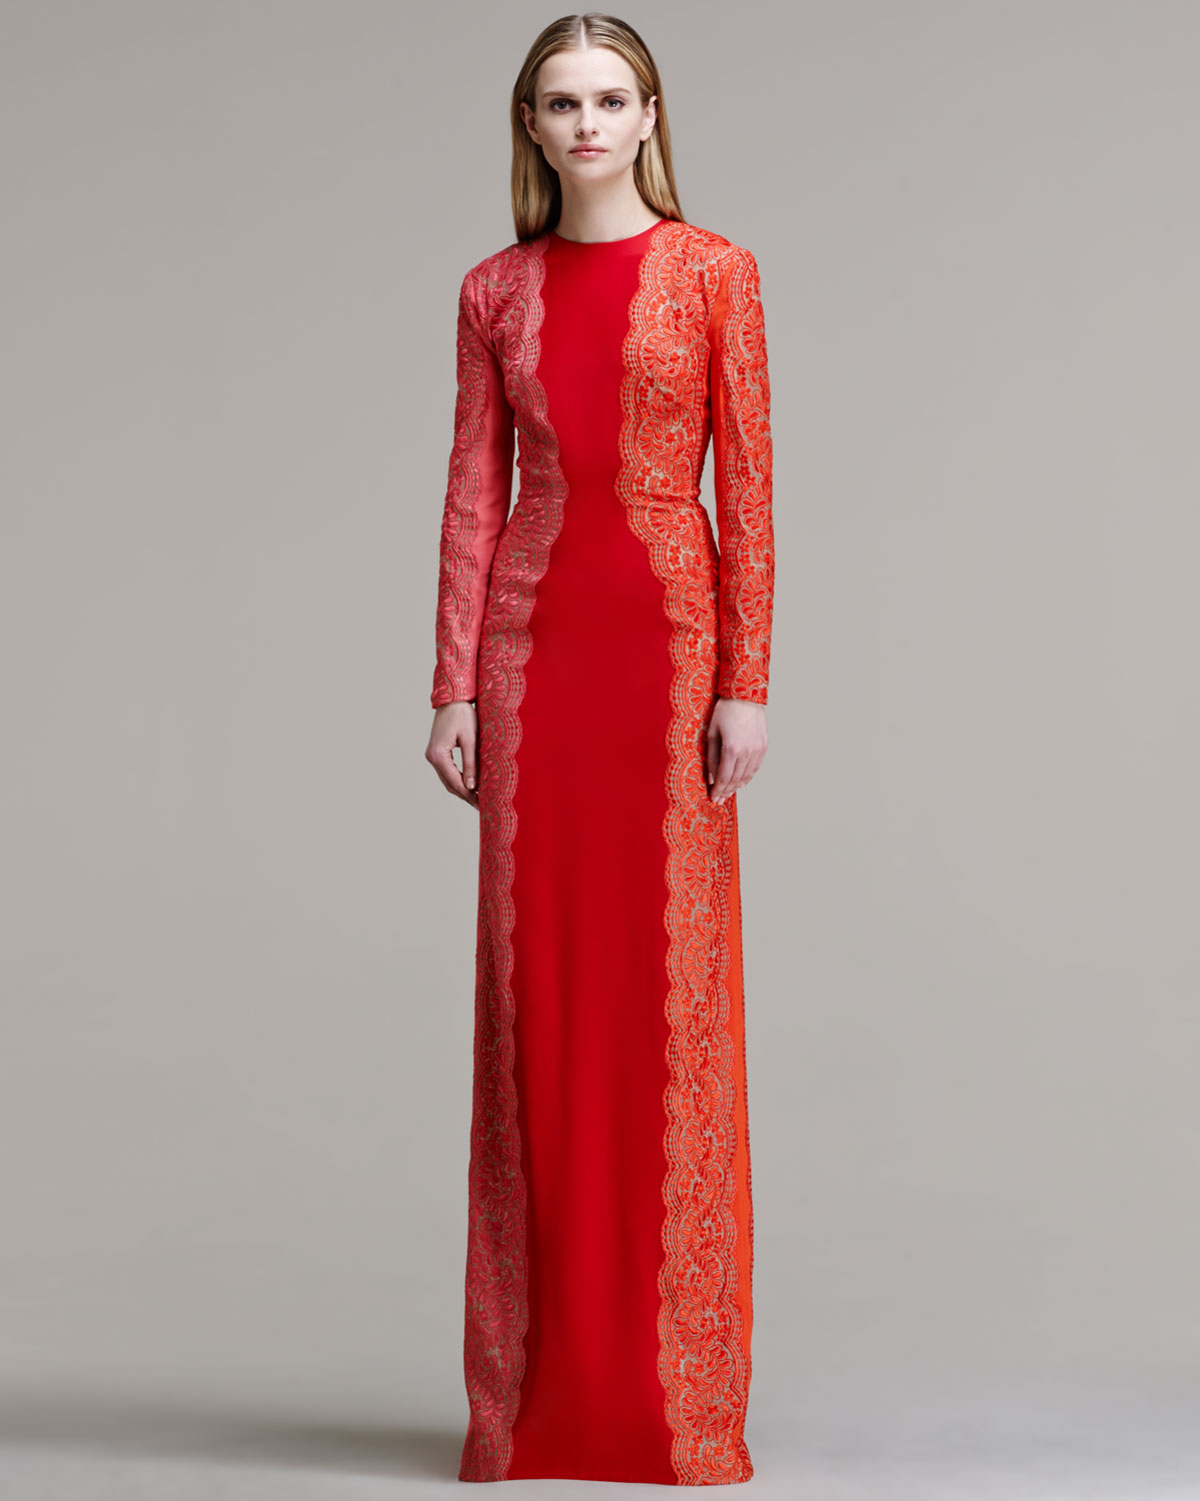 Lyst - Stella Mccartney Scallop-panel Lace Long-sleeve Gown ...